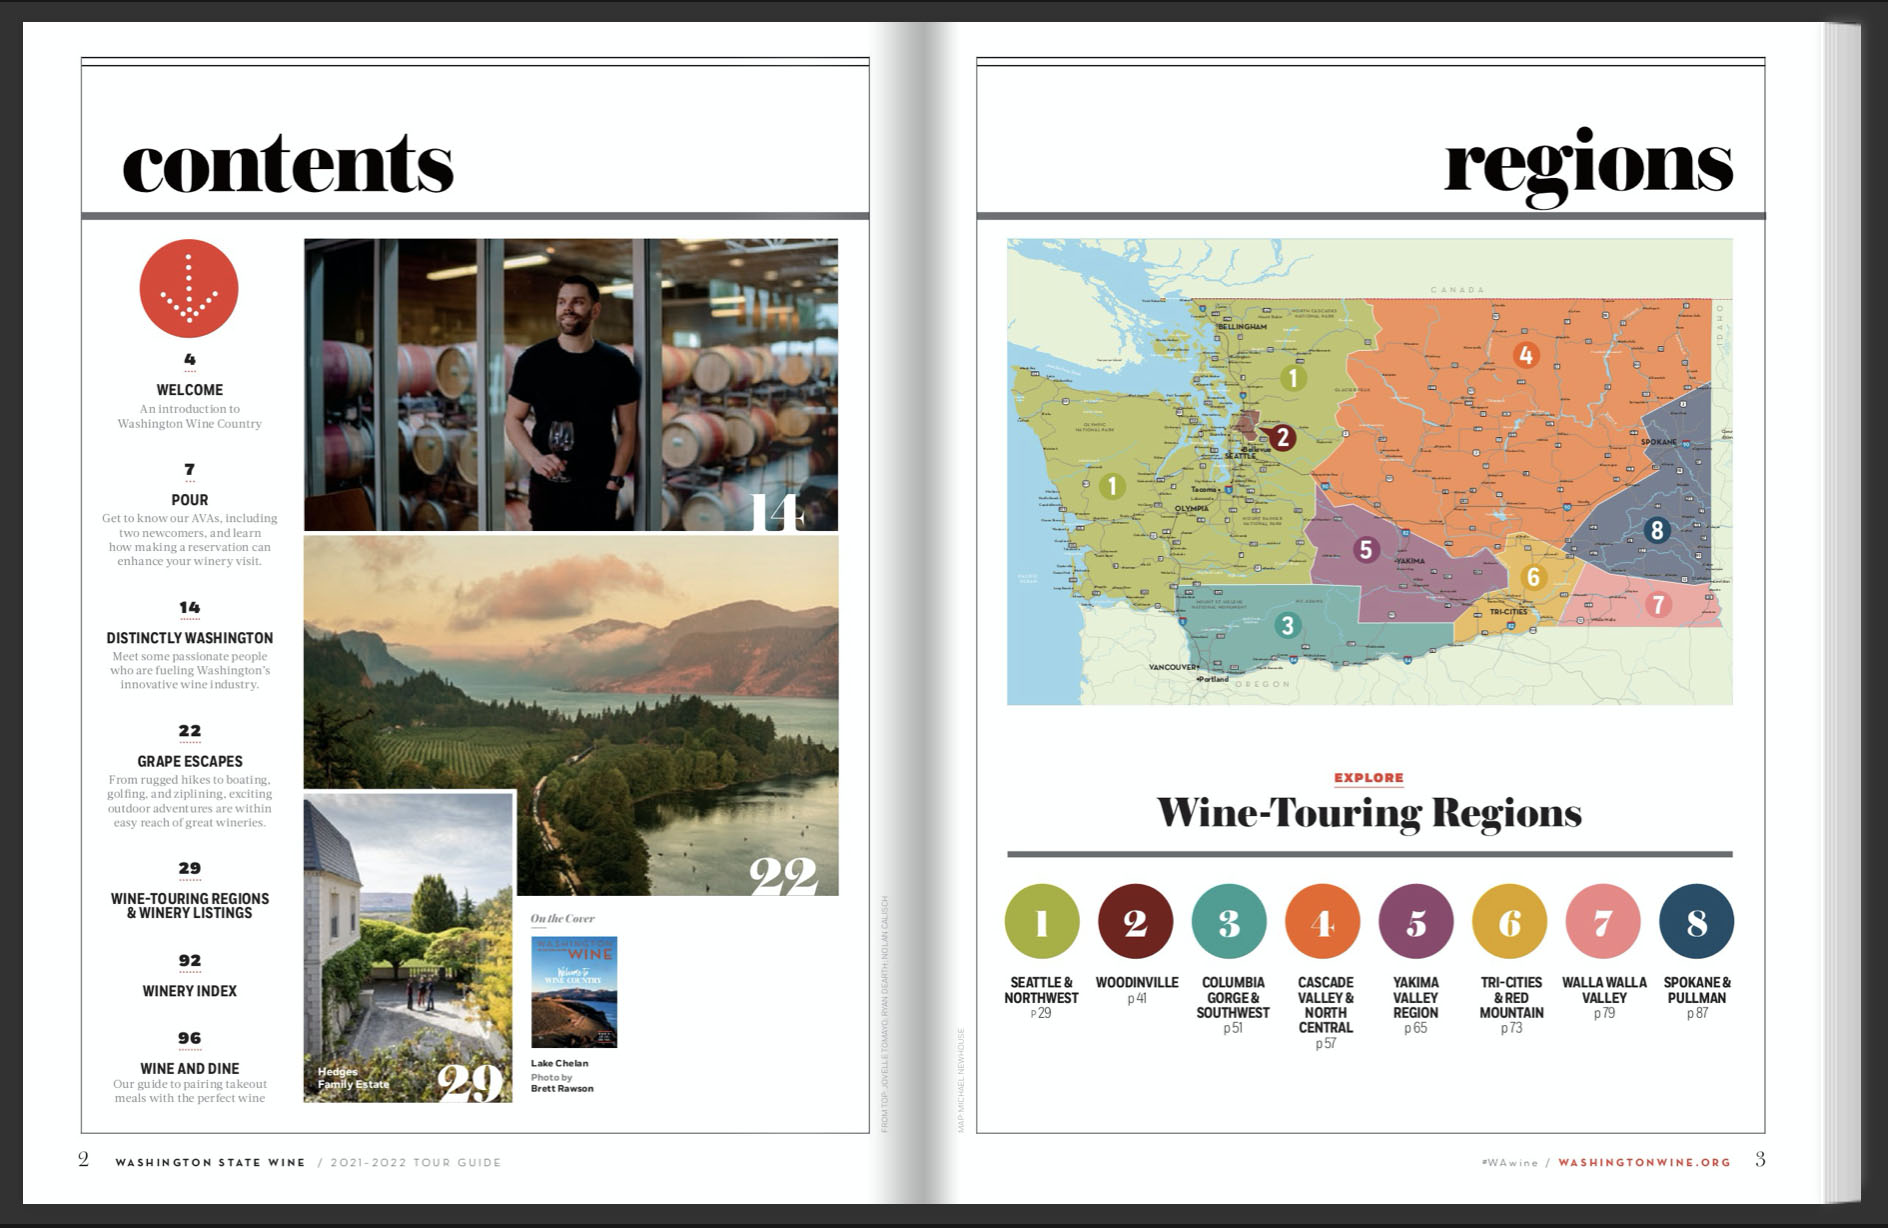 Two-fold of a magazine with Contents and Regions at the top of each page. The pages show photos of landscapes and a person in a barrel room, and a map of Washington.